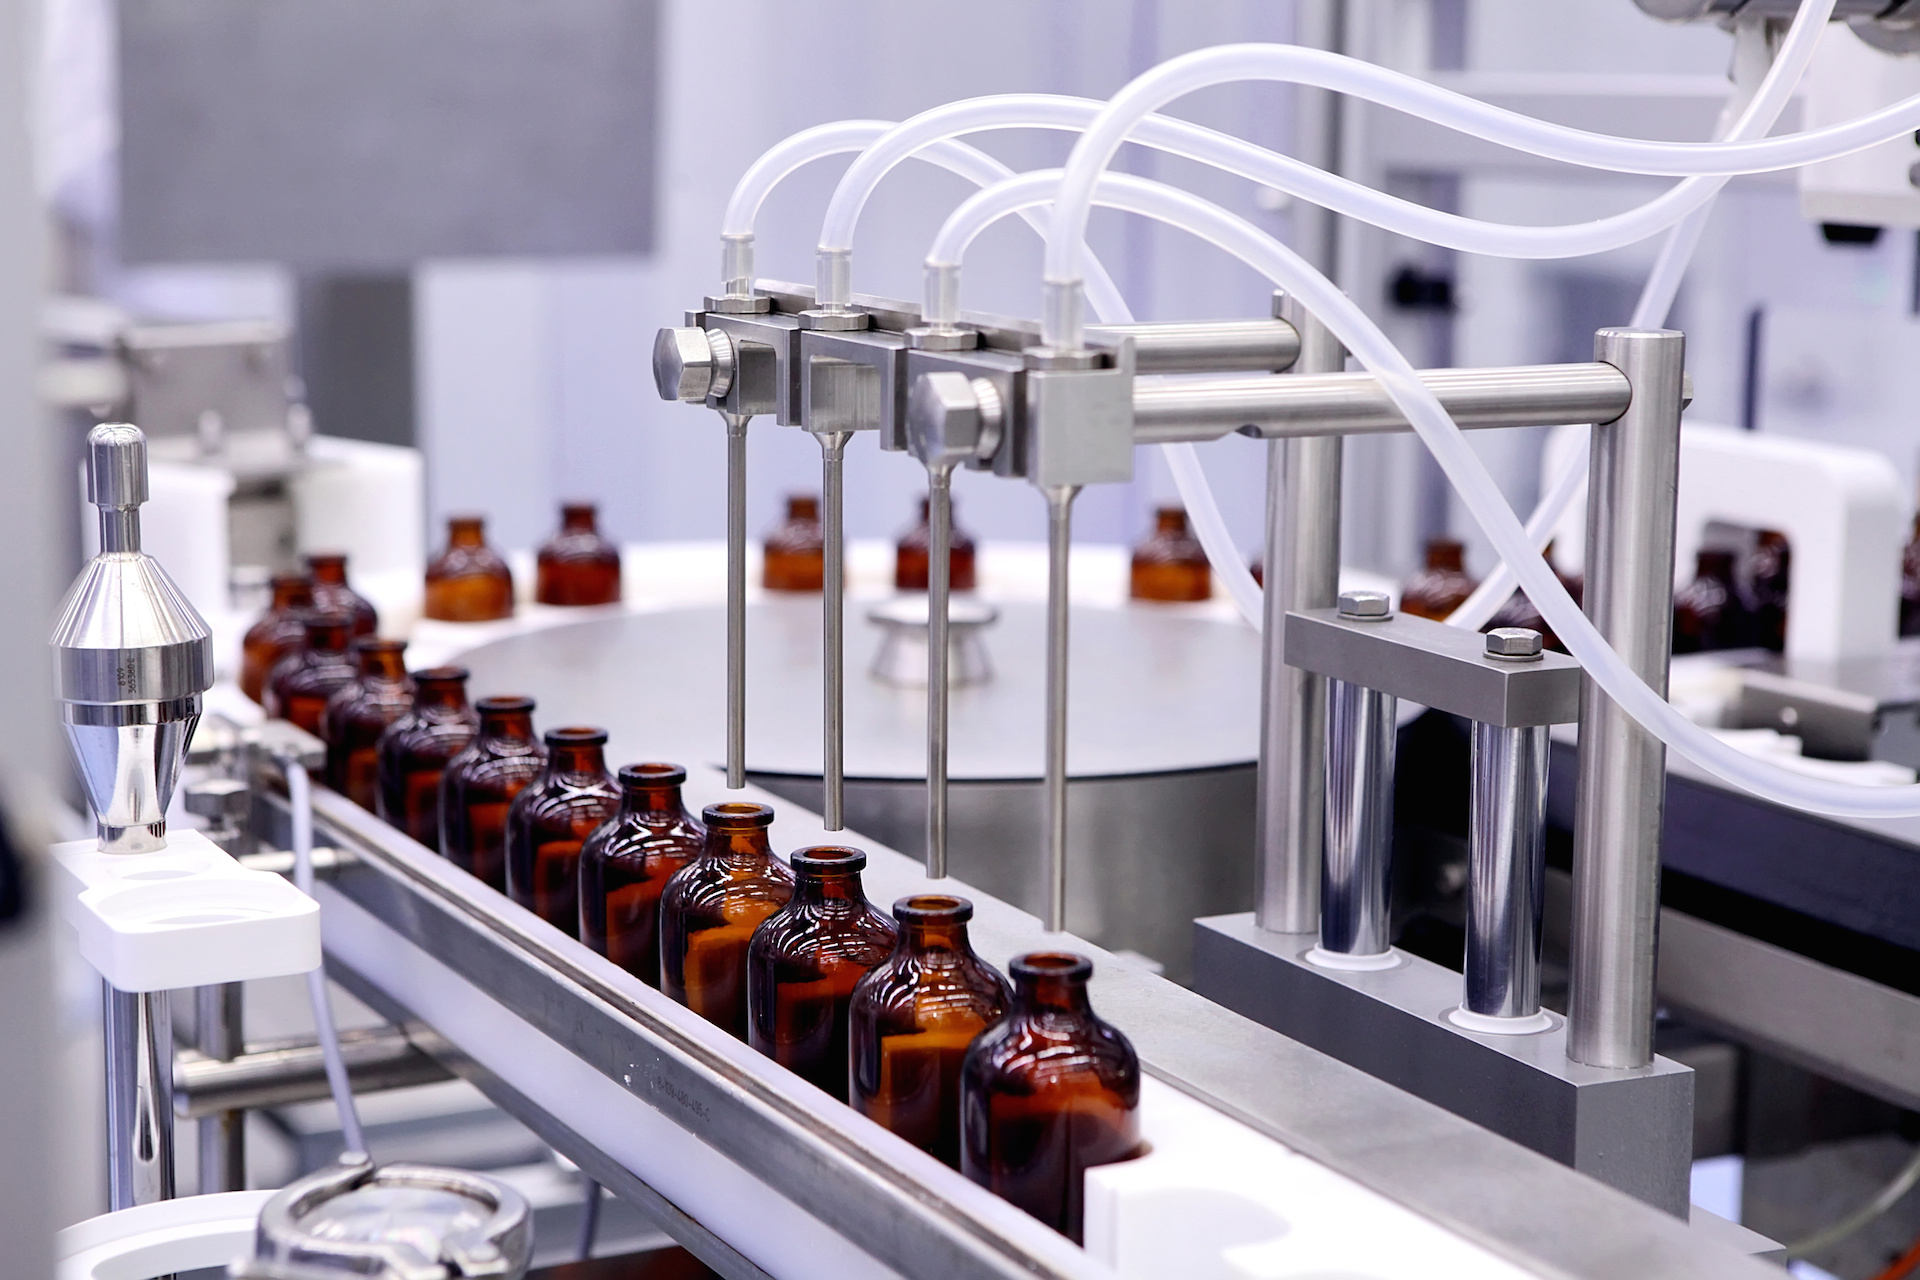 Bottling and packaging of sterile medical products. Machine after validation of sterile liquids. Manufacture of pharmaceuticals.